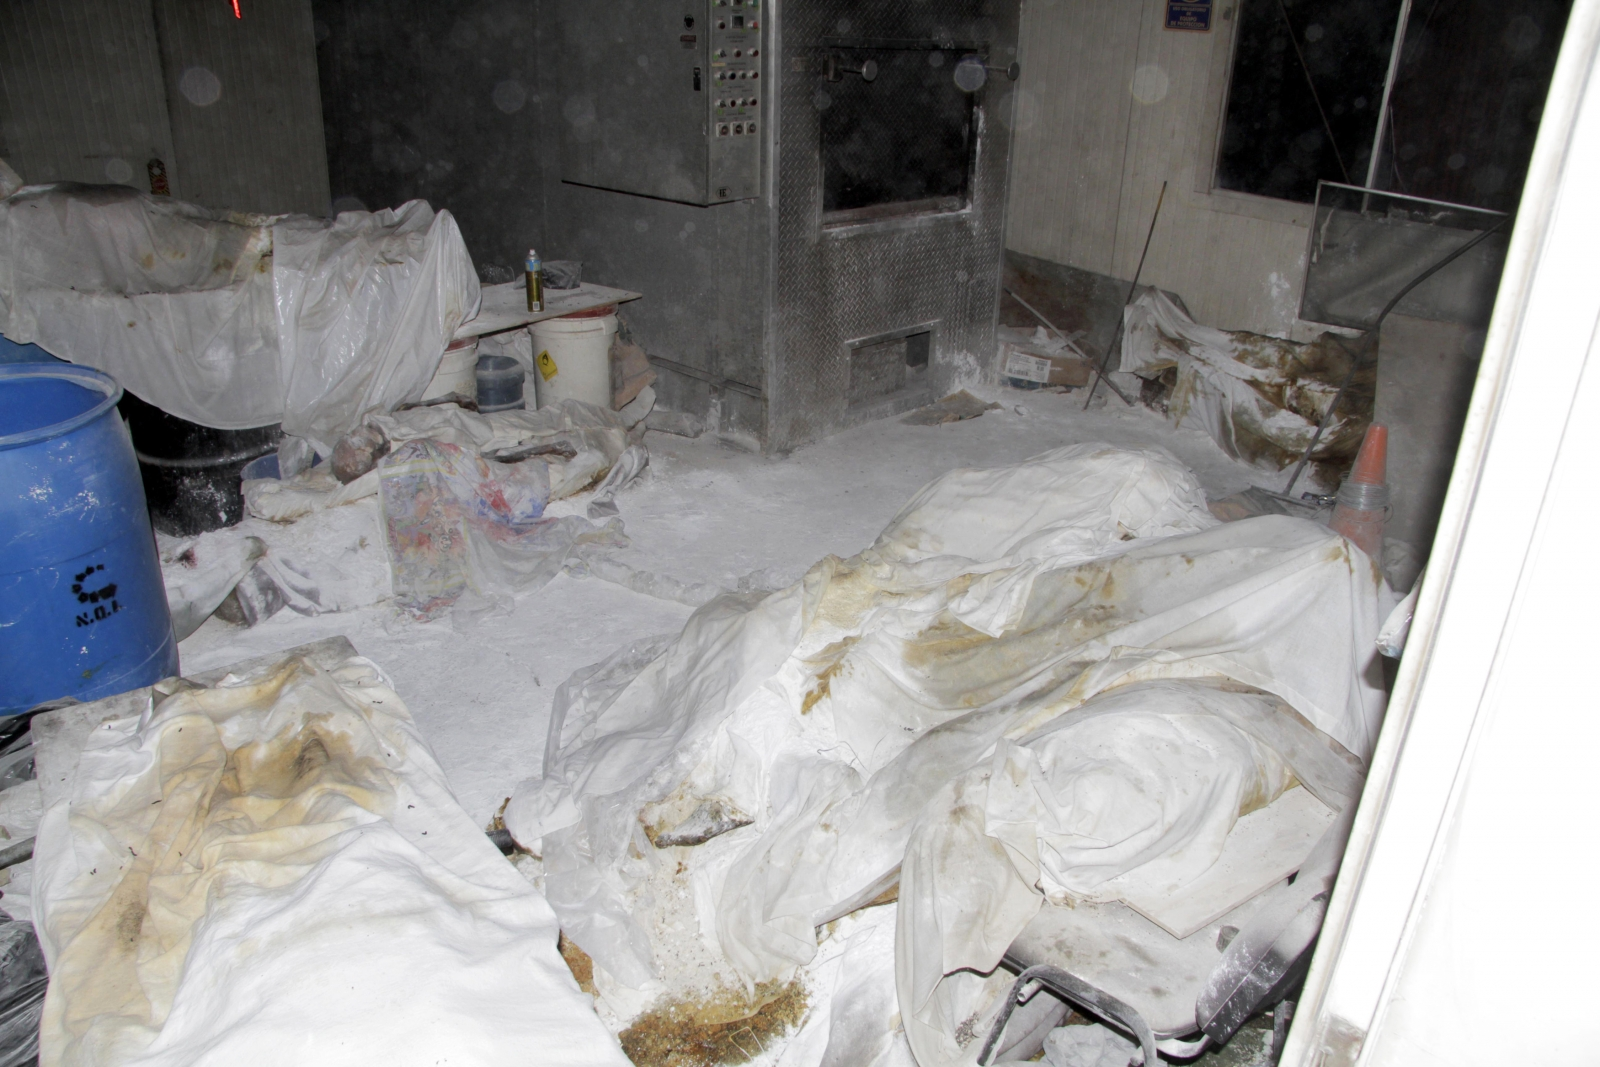 Covered dead bodies are seen at a crematorium in Mexico